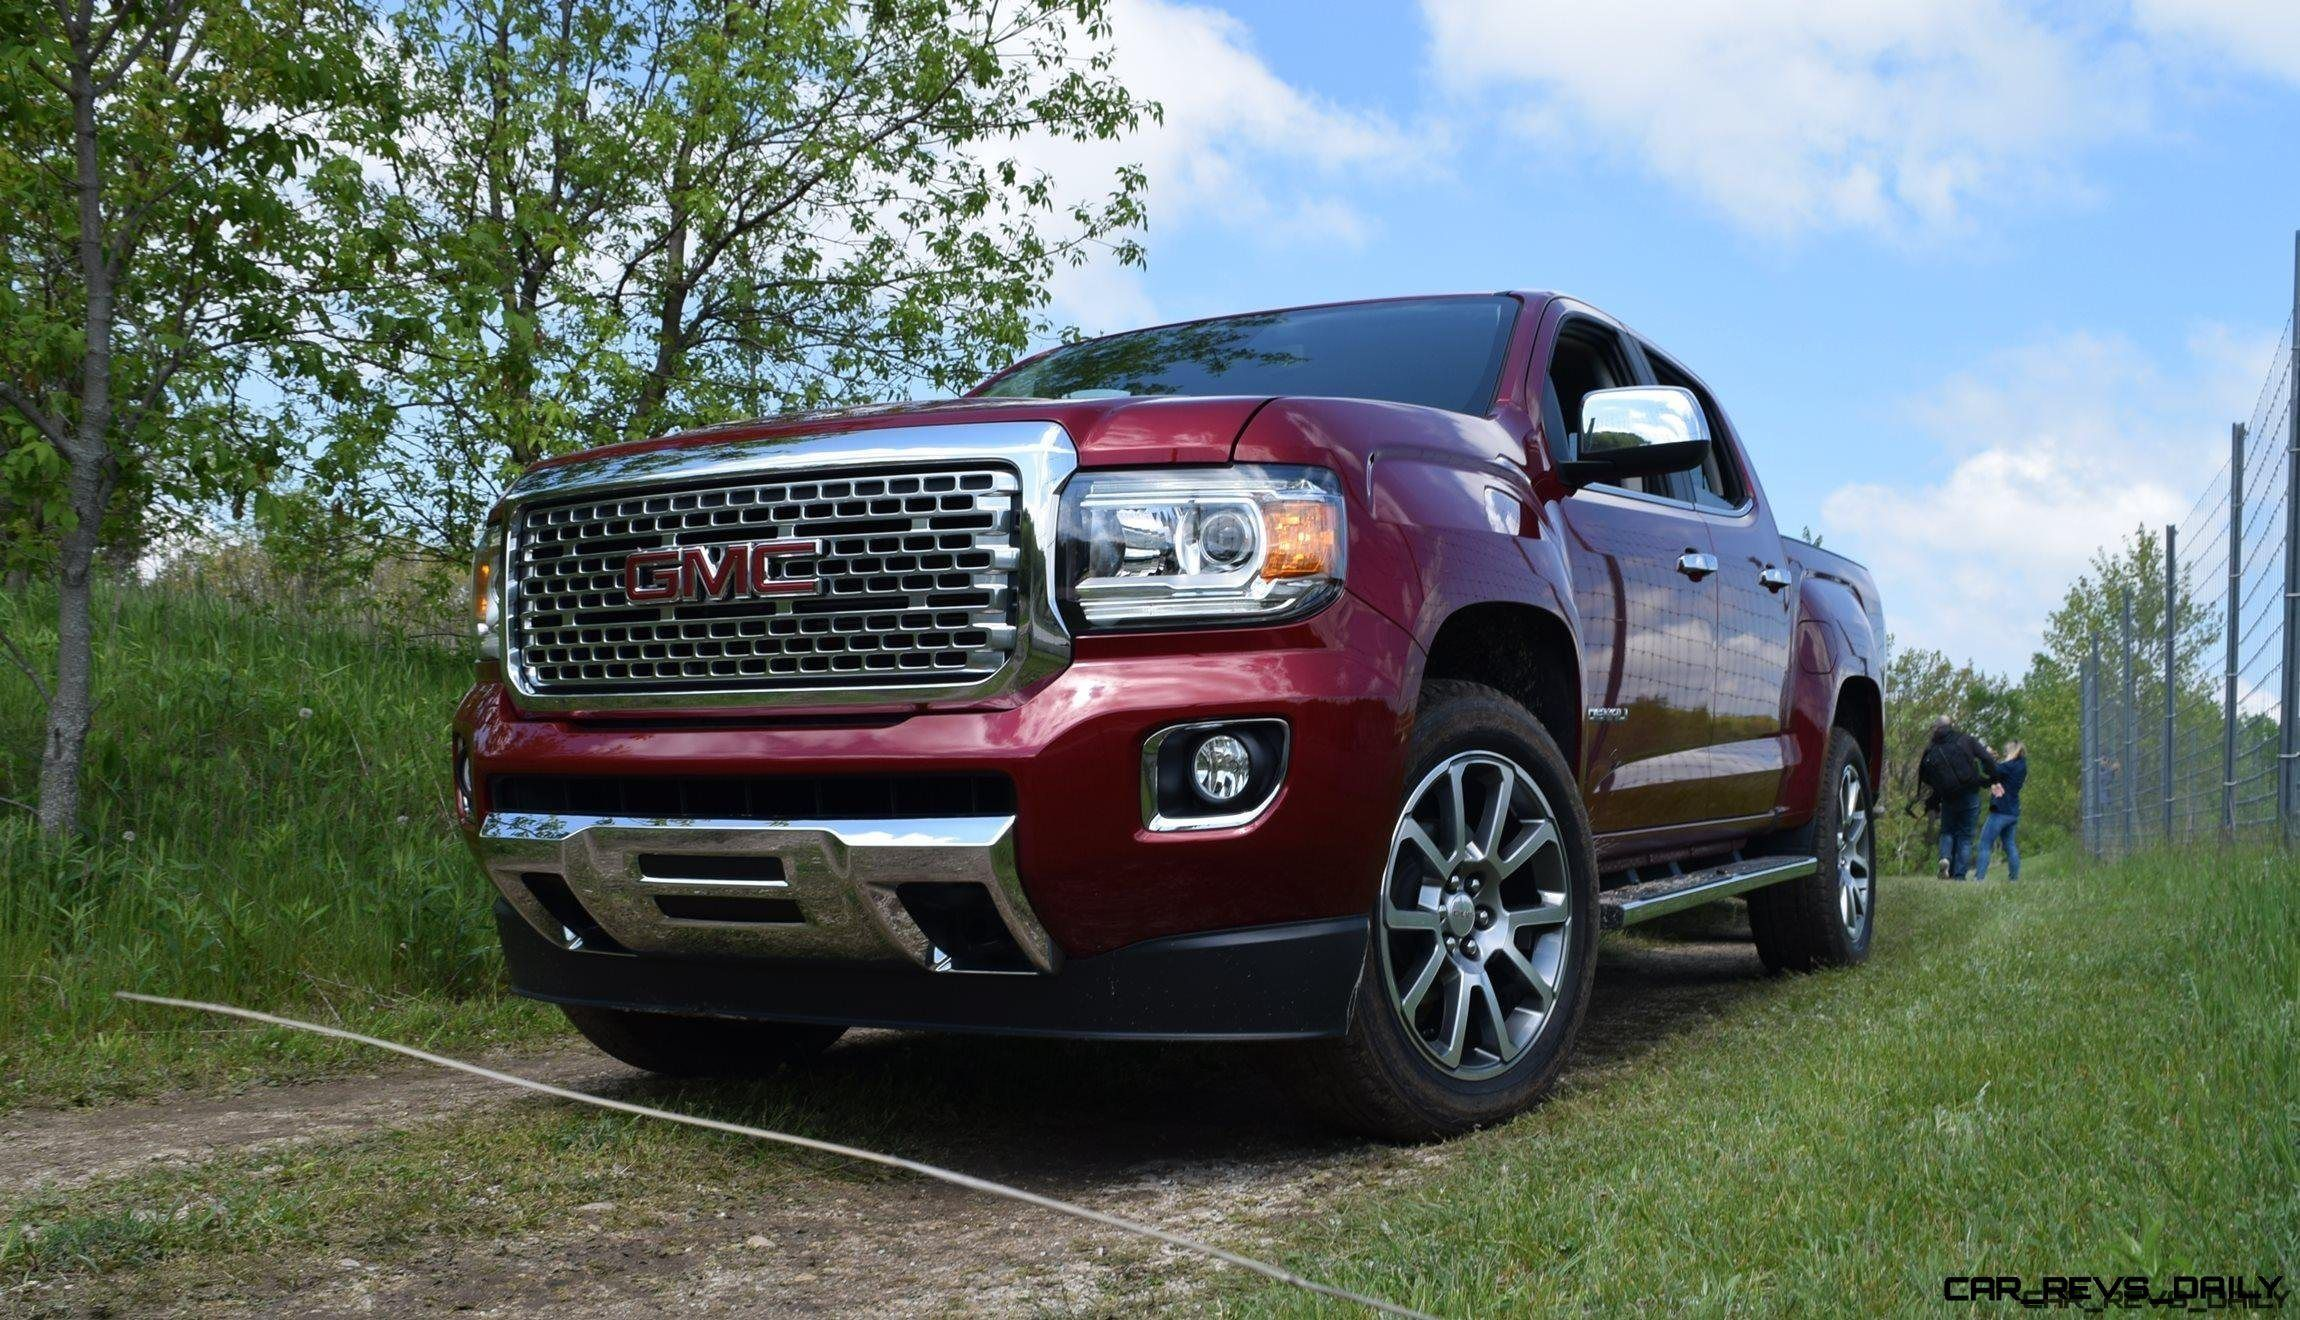 2020 Gmc Canyon Denali Concept And Review In 2020 Gmc Canyon Gmc Canyon